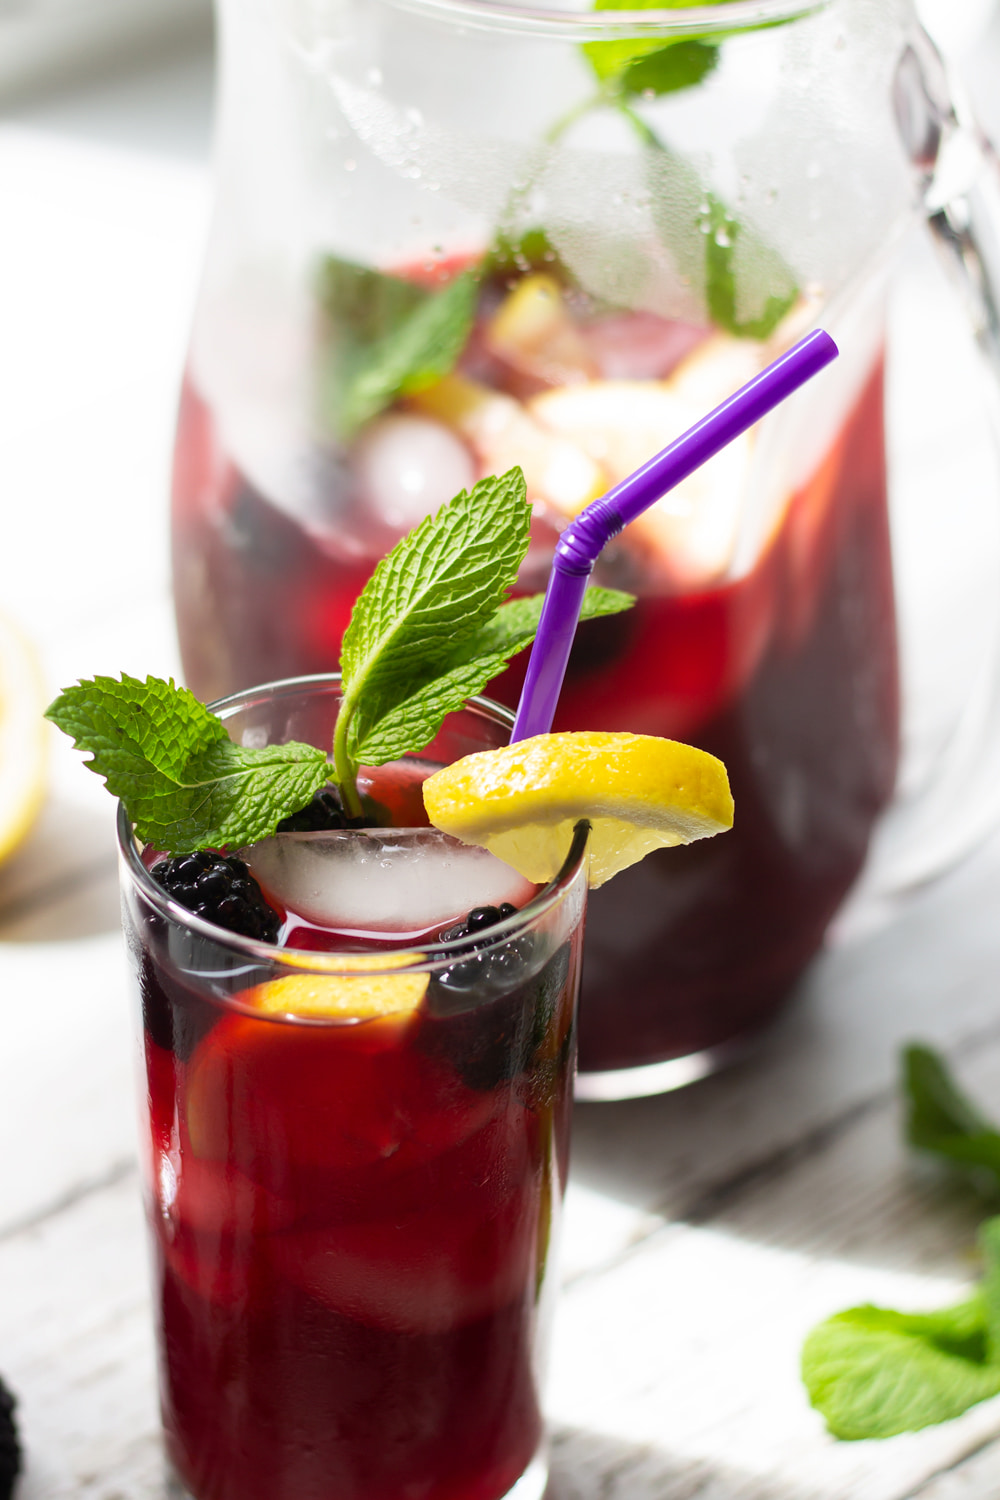 blackberry iced tea in a glass with mint and lemon garnish